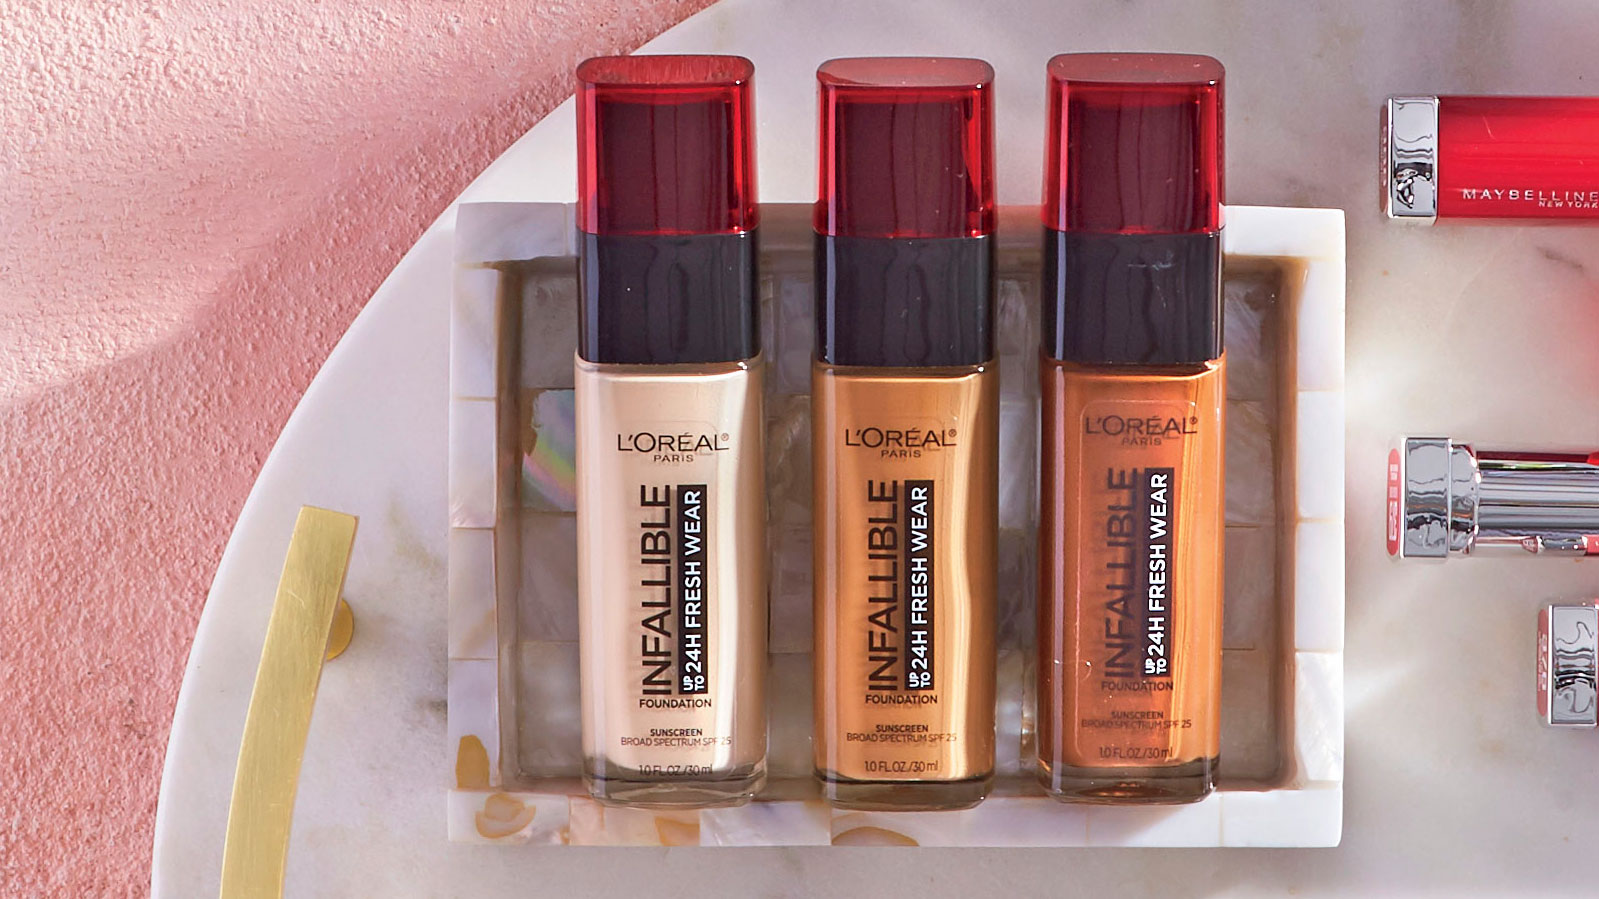 L'Oréal Paris Infallible up to 24HR Fresh Wear Foundation